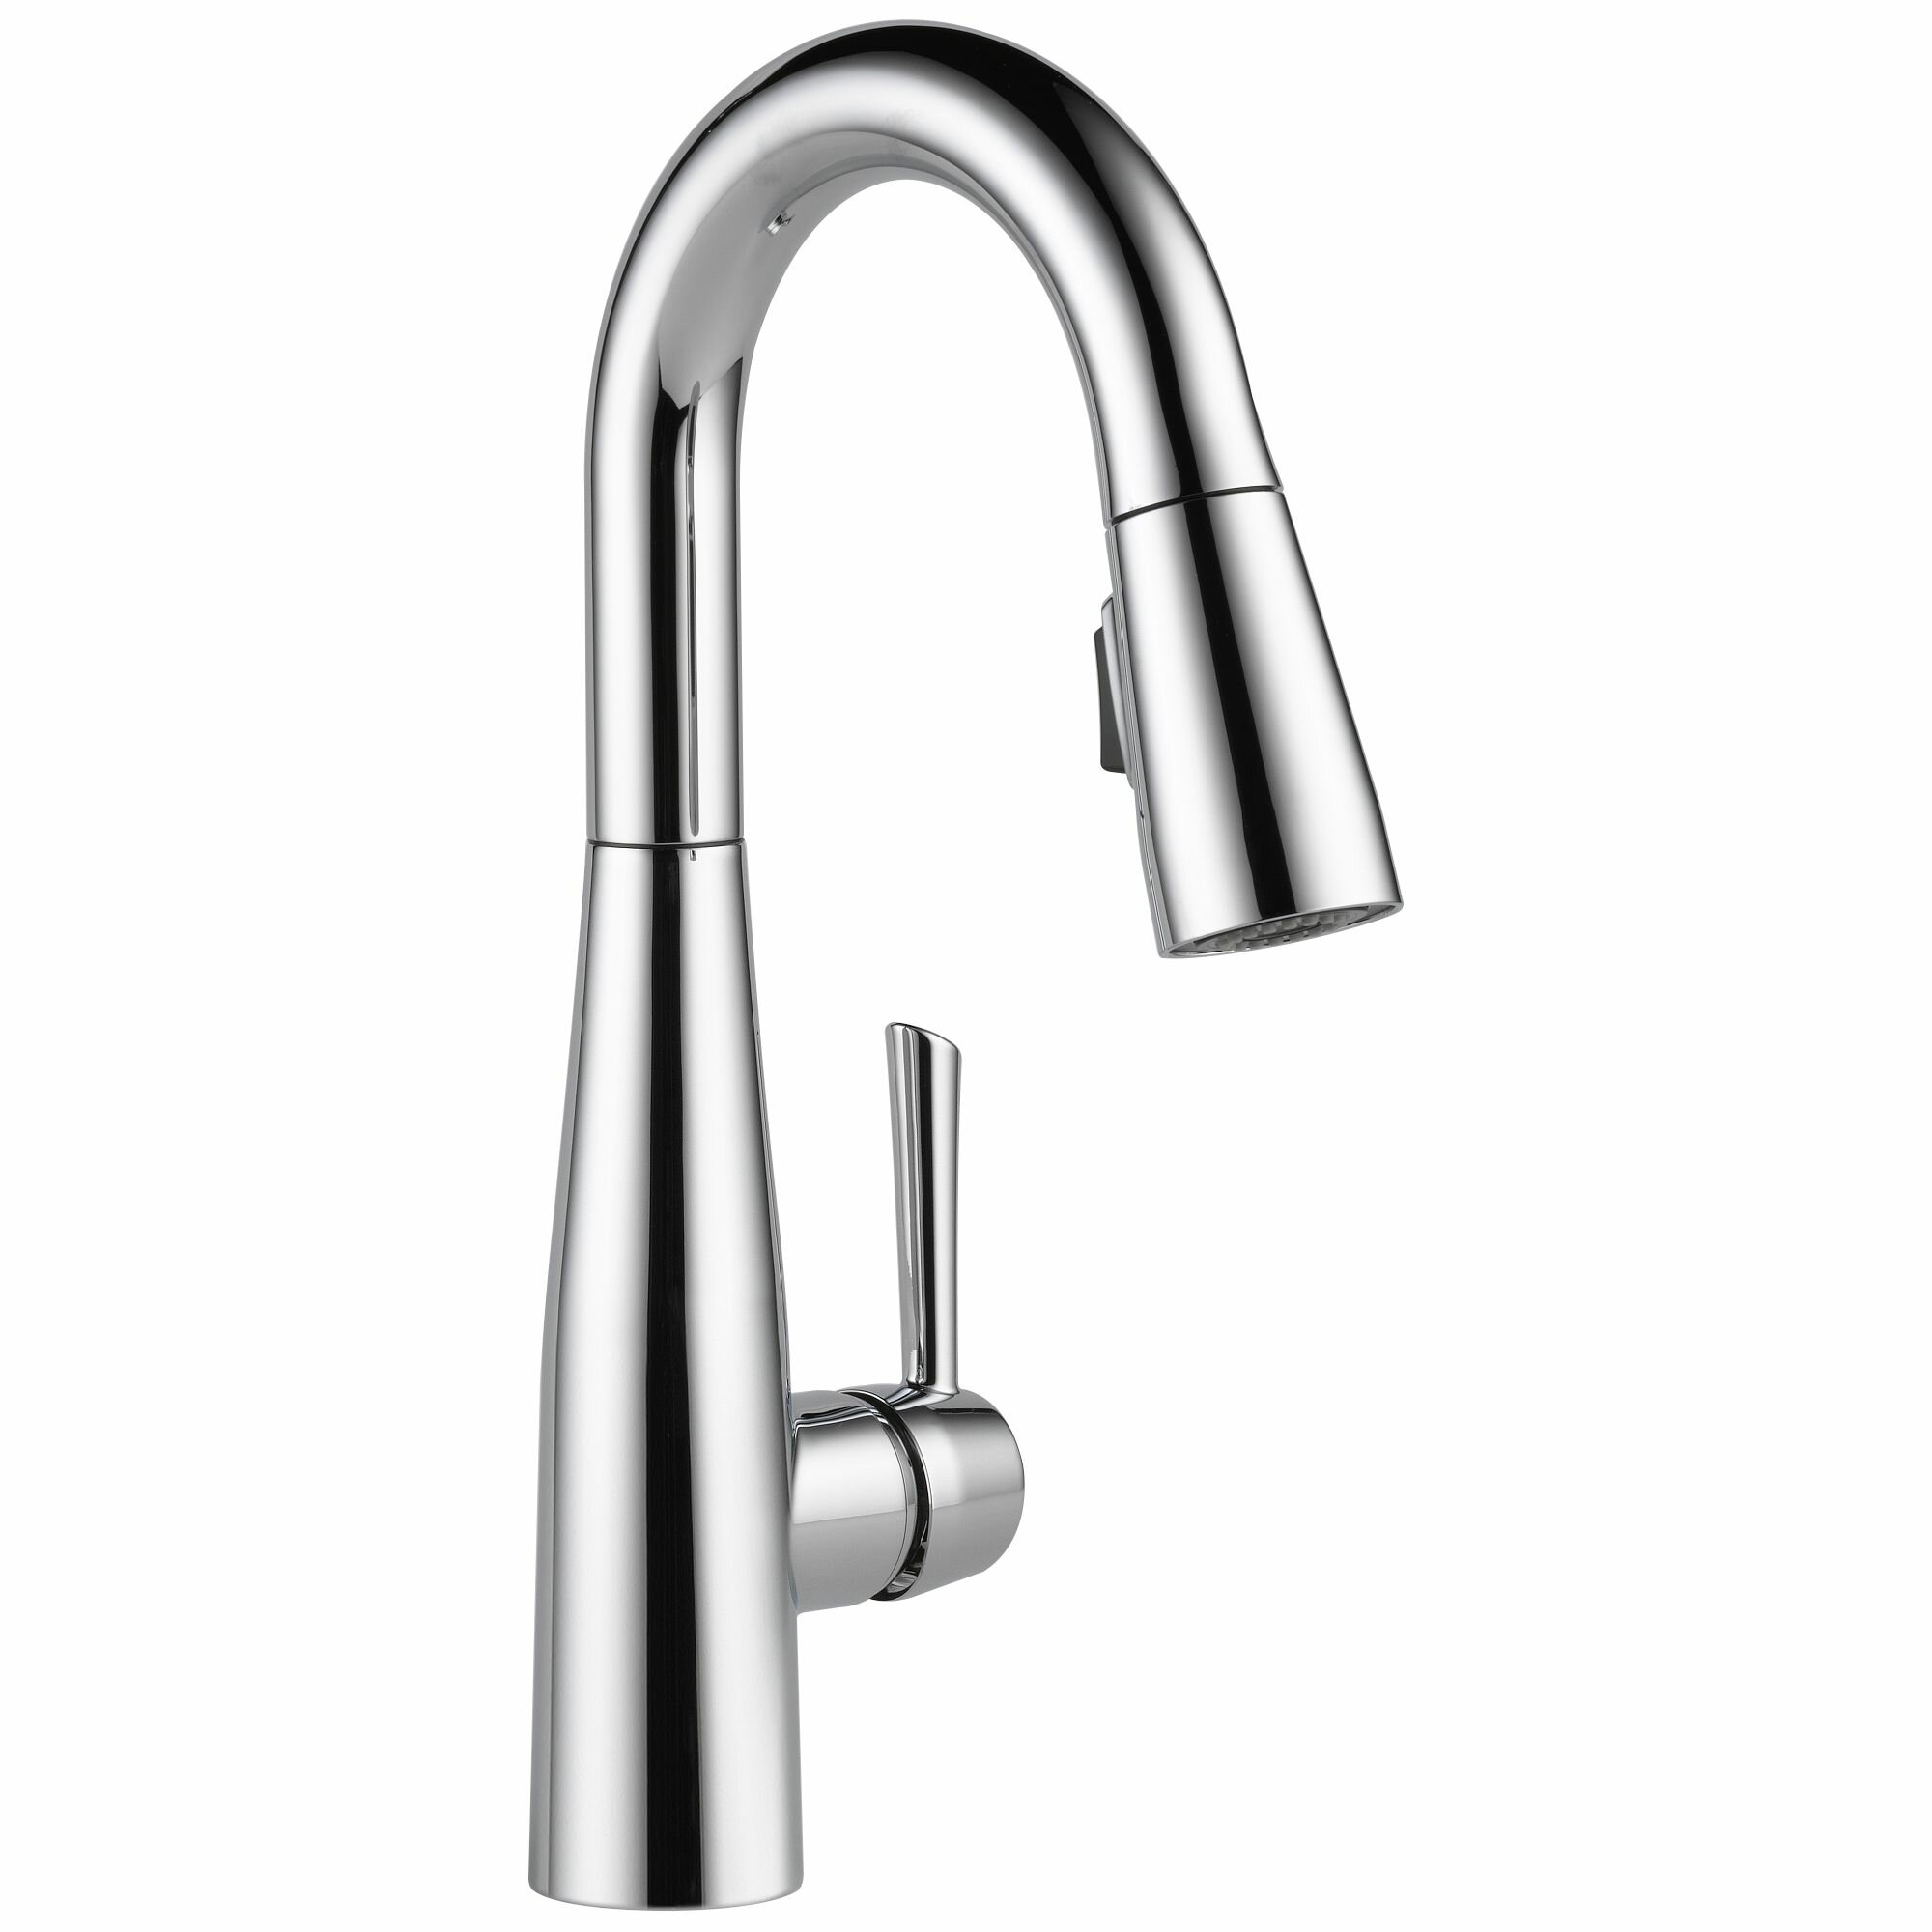 3 hole kitchen faucets c a~ kitchen faucet sale QUICK VIEW